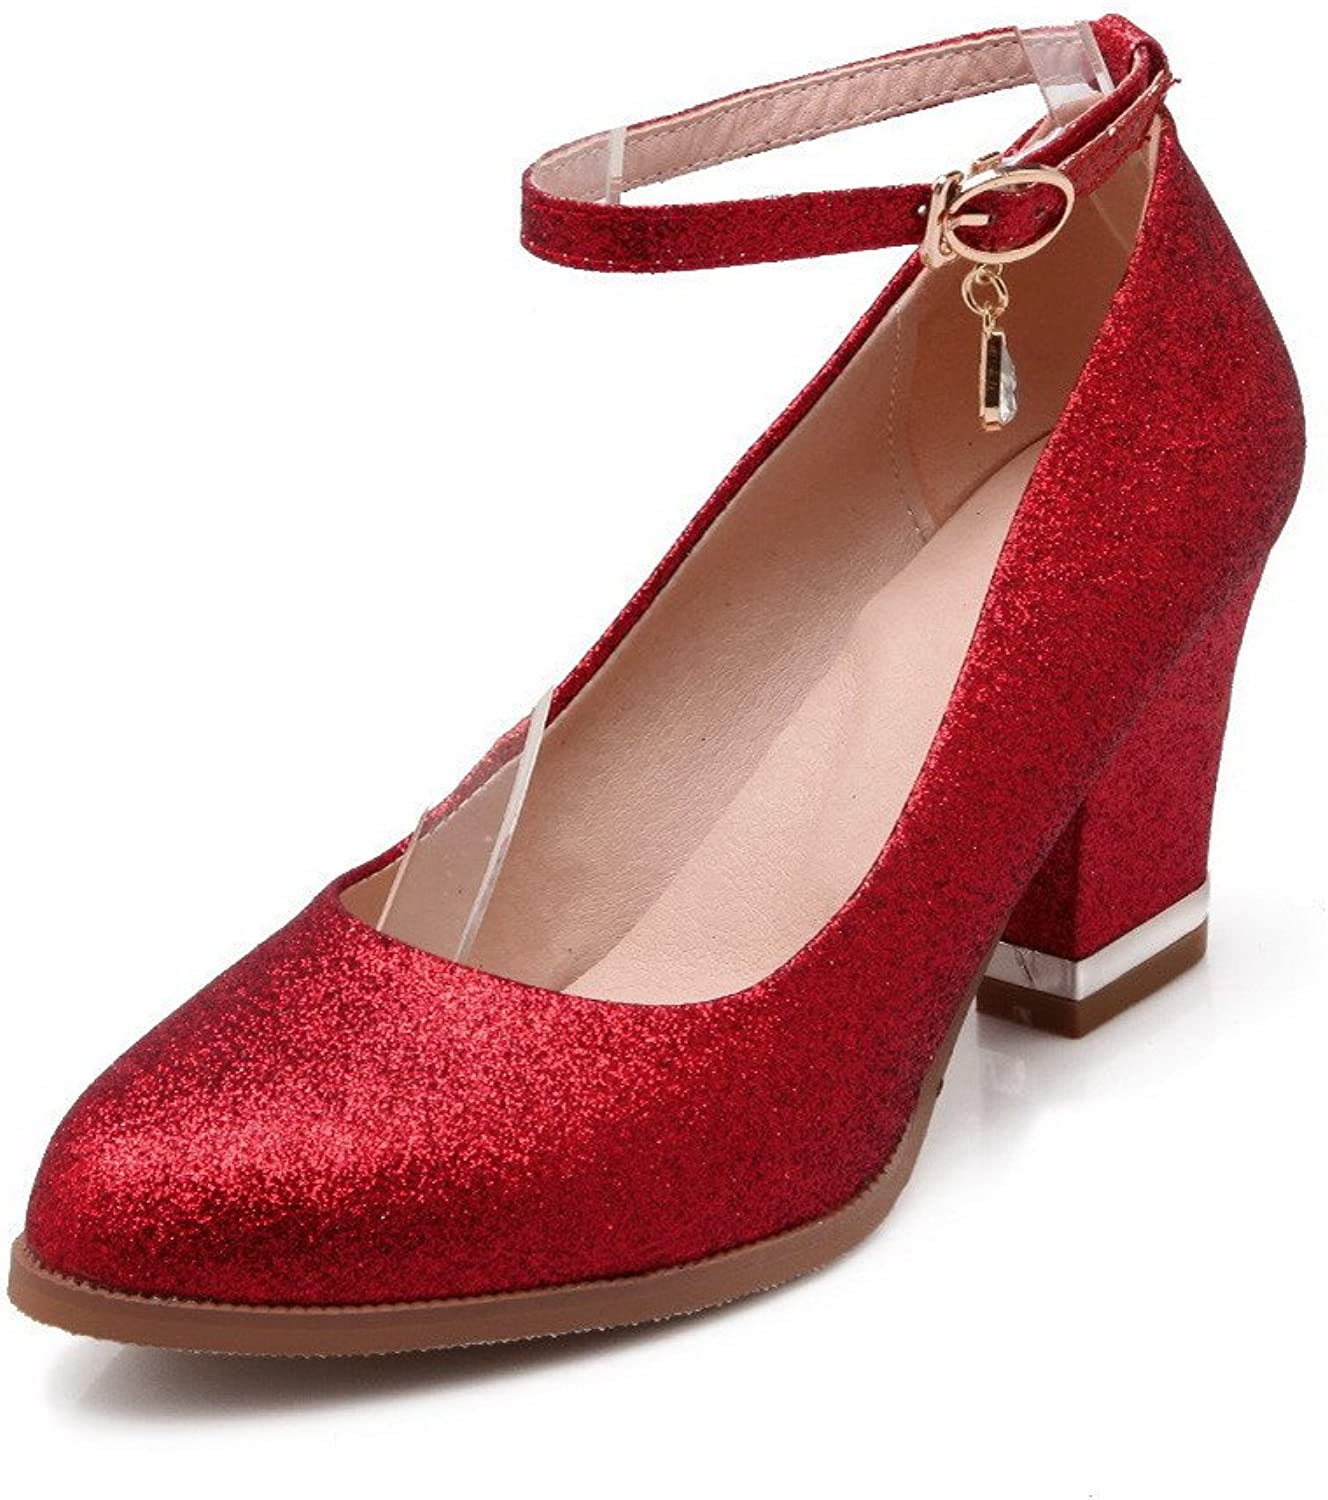 AmoonyFashion Women's Buckle Round Closed Toe High Heels Blend Materials Solid Pumps-shoes